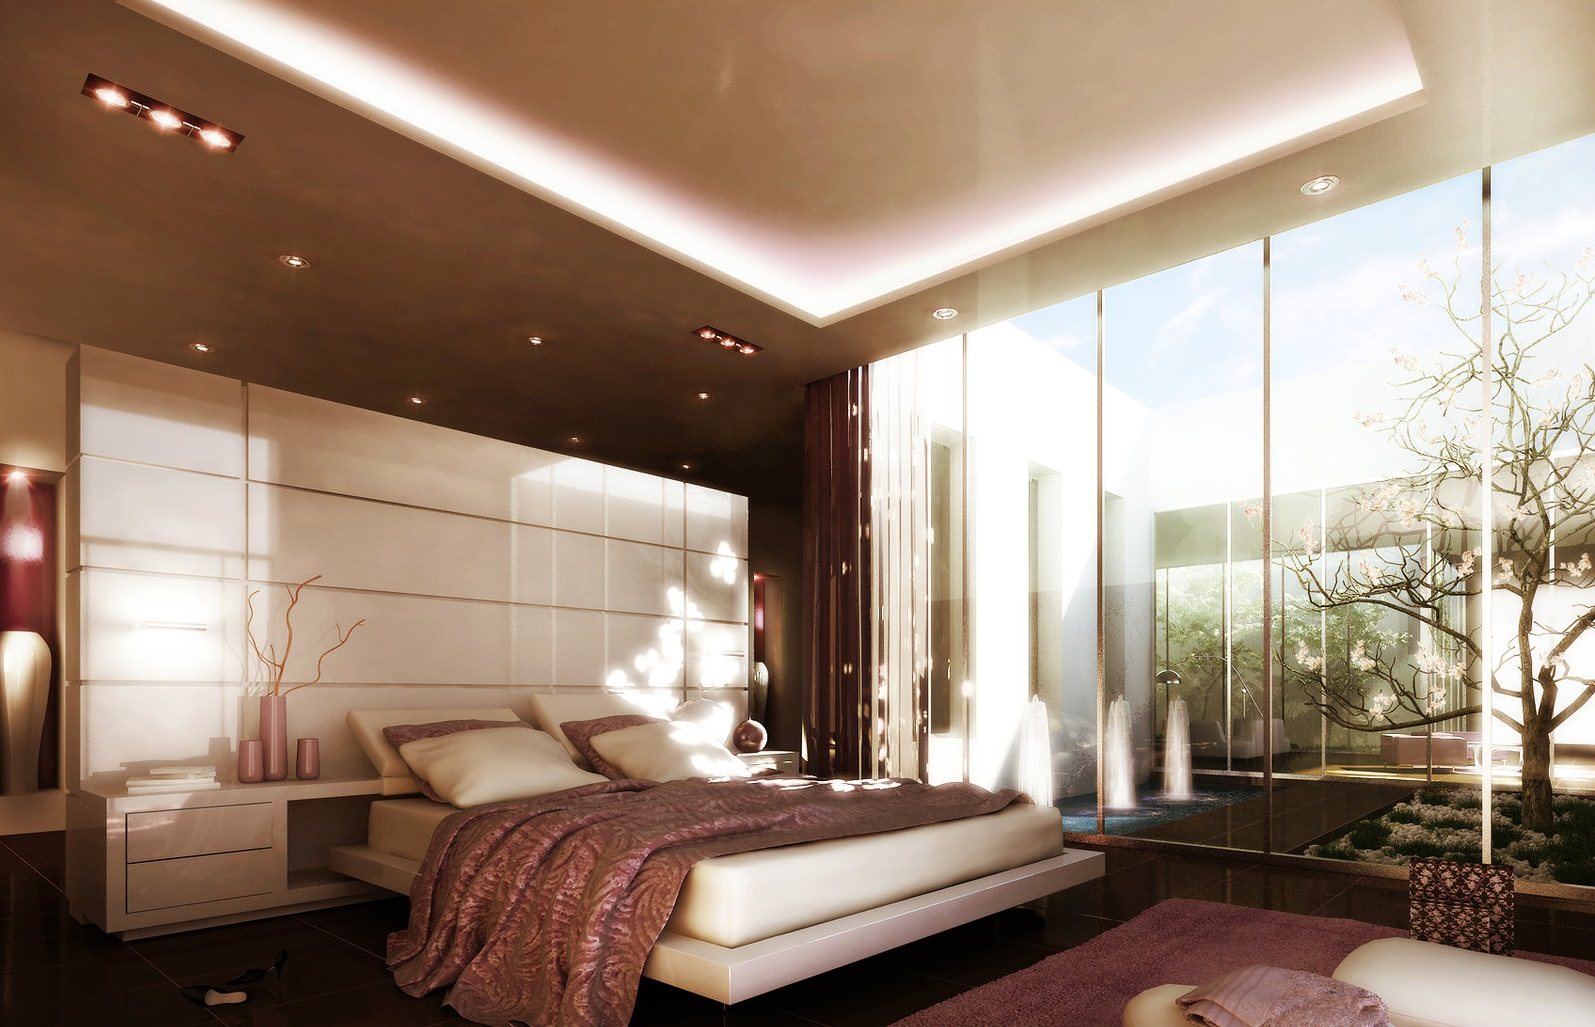 Superb Design Of The Bedroom Areas With Black Wall And White Ceiling Ideas As Well As The Bedroom Romantic Theme